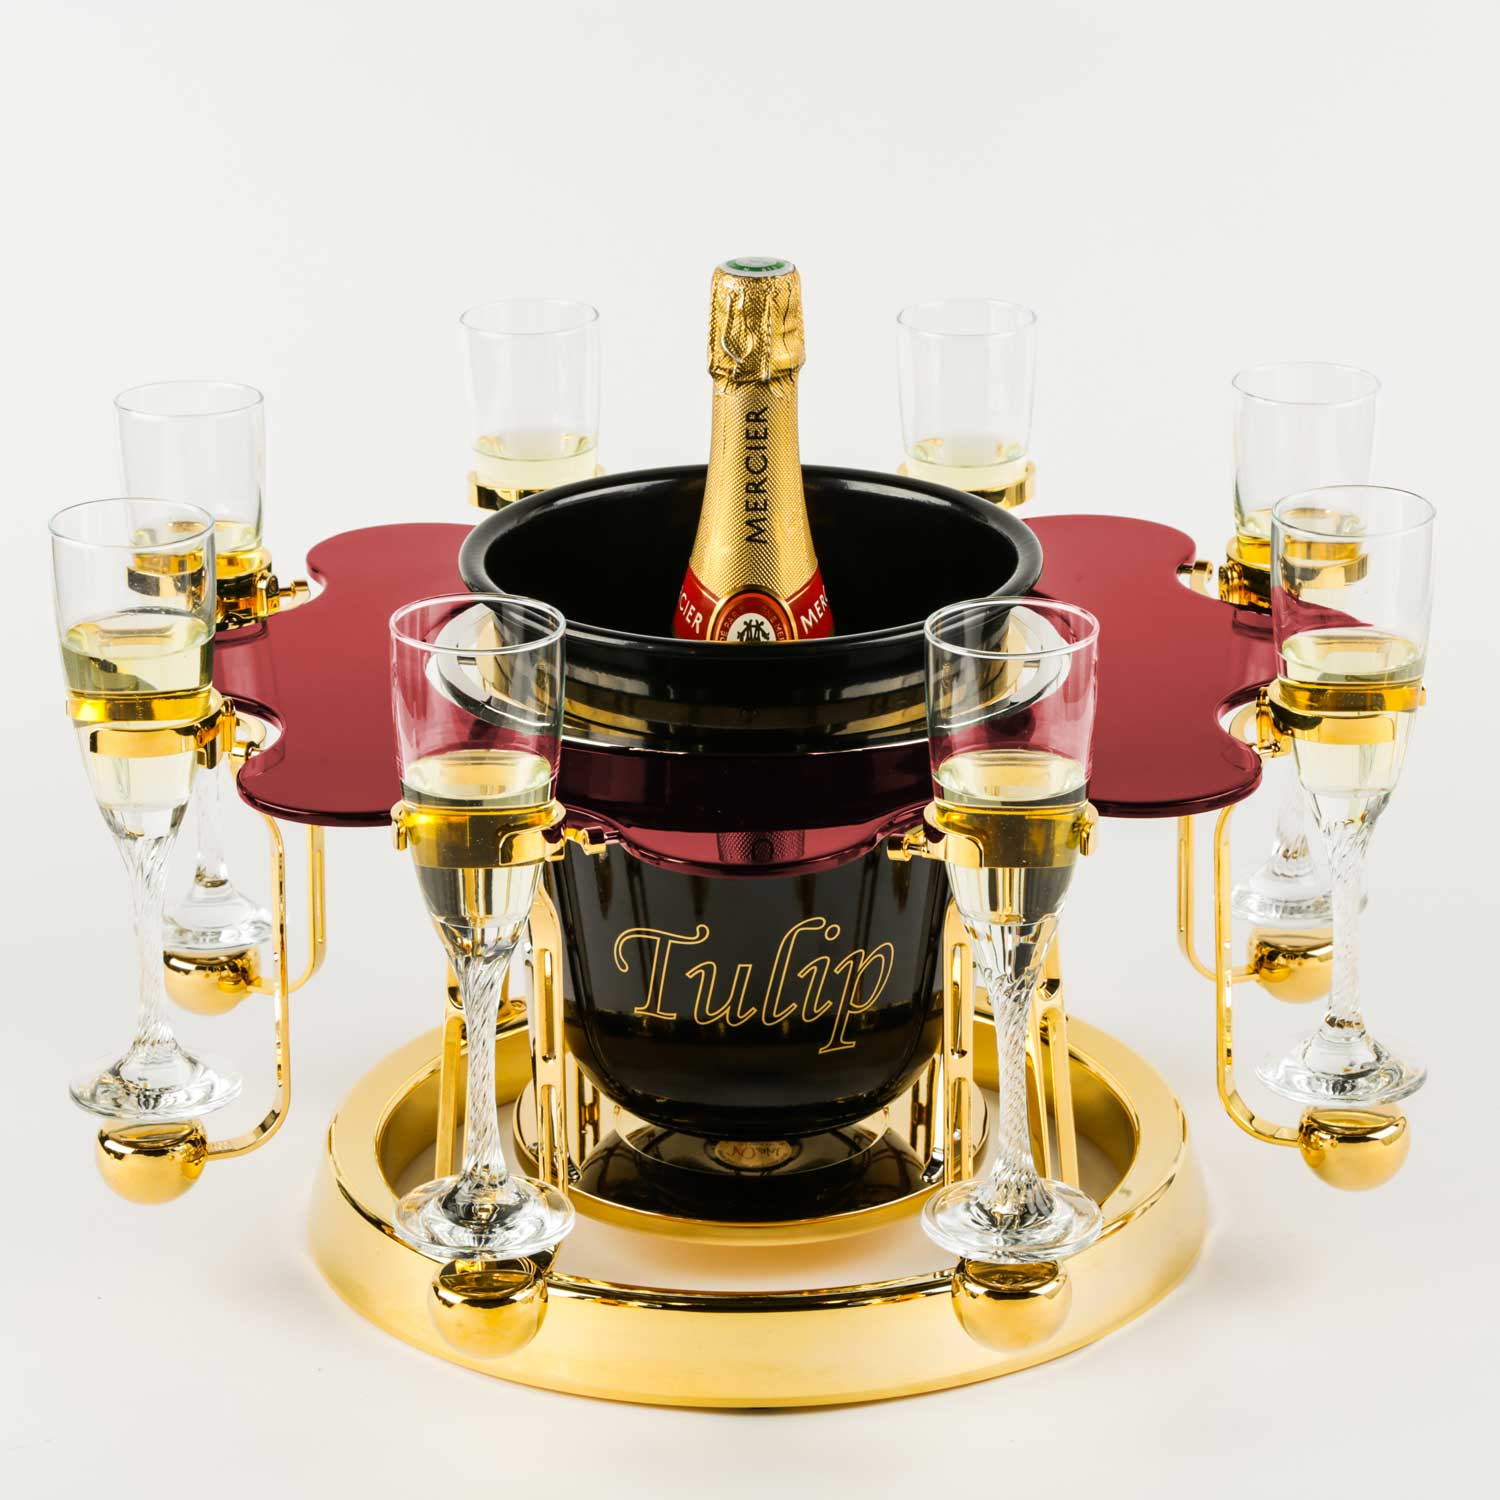 Tulip By Germain luxury champagne bucket Elegance edition Mercier